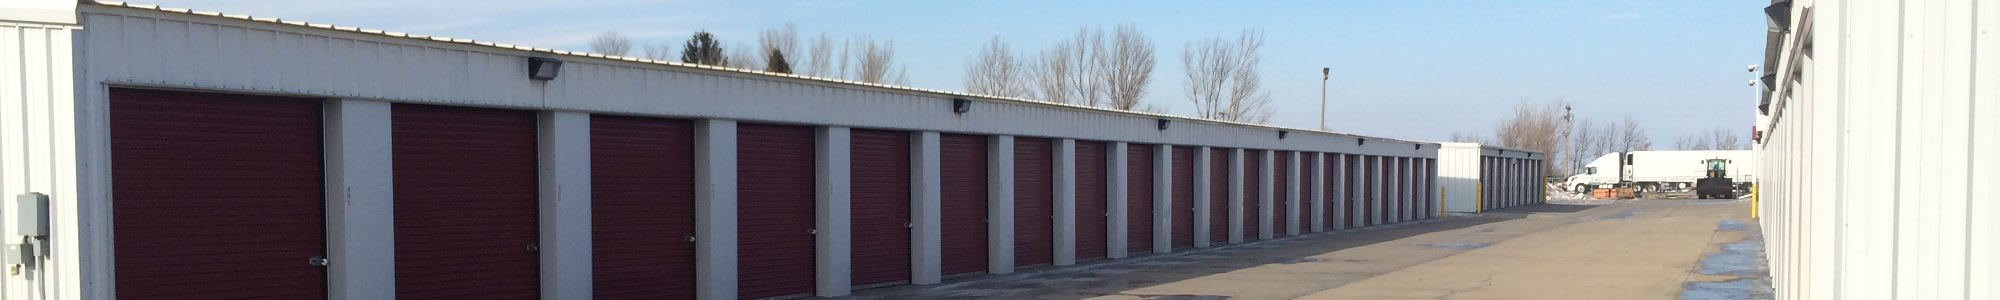 Reviews of self storage in Grand Forks ND